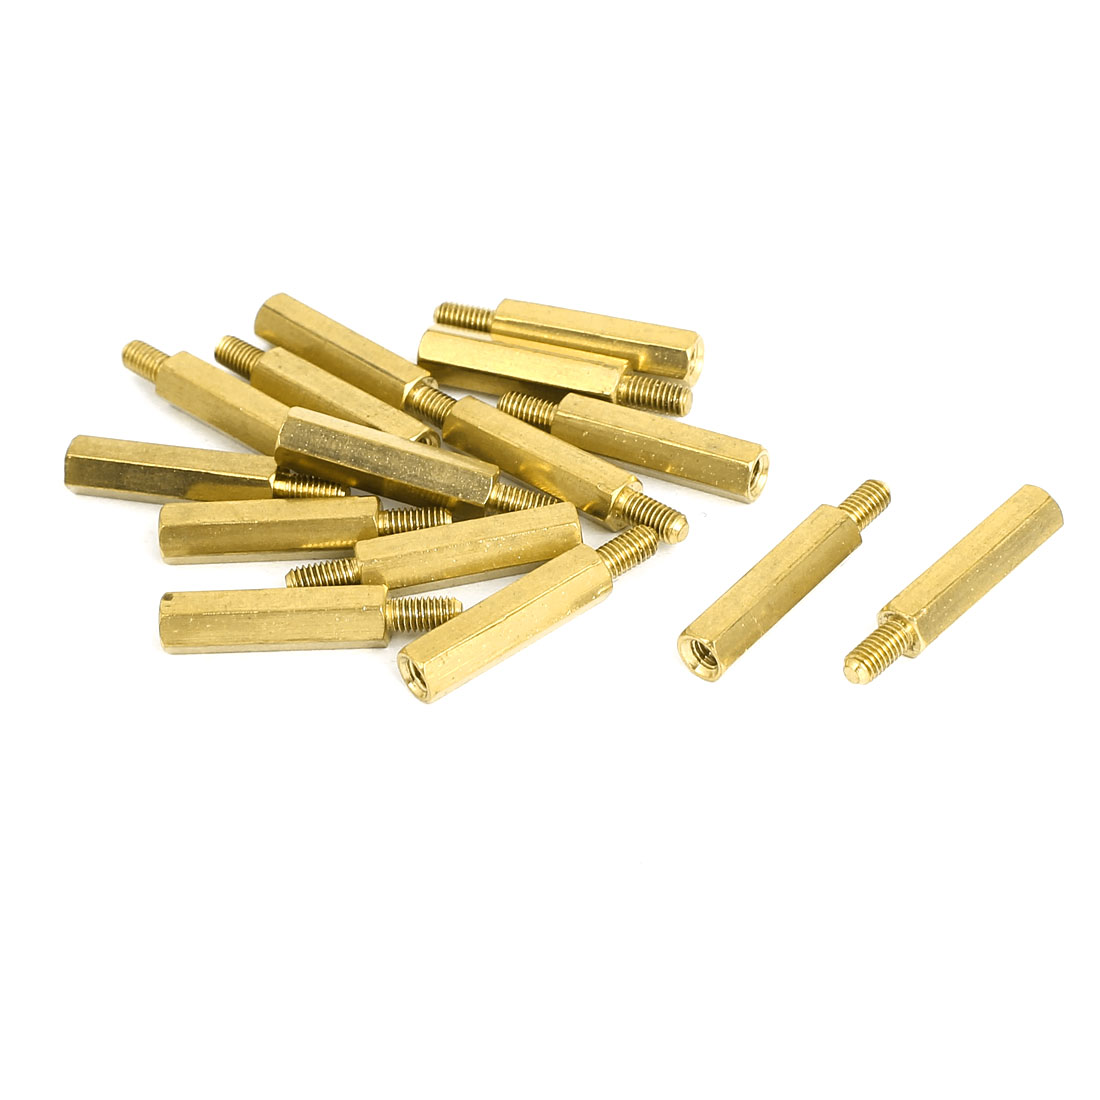 M3 Male/Female Thread Brass Hex Hexagonal Spacer Standoff Support 19mm+6mm 15pcs